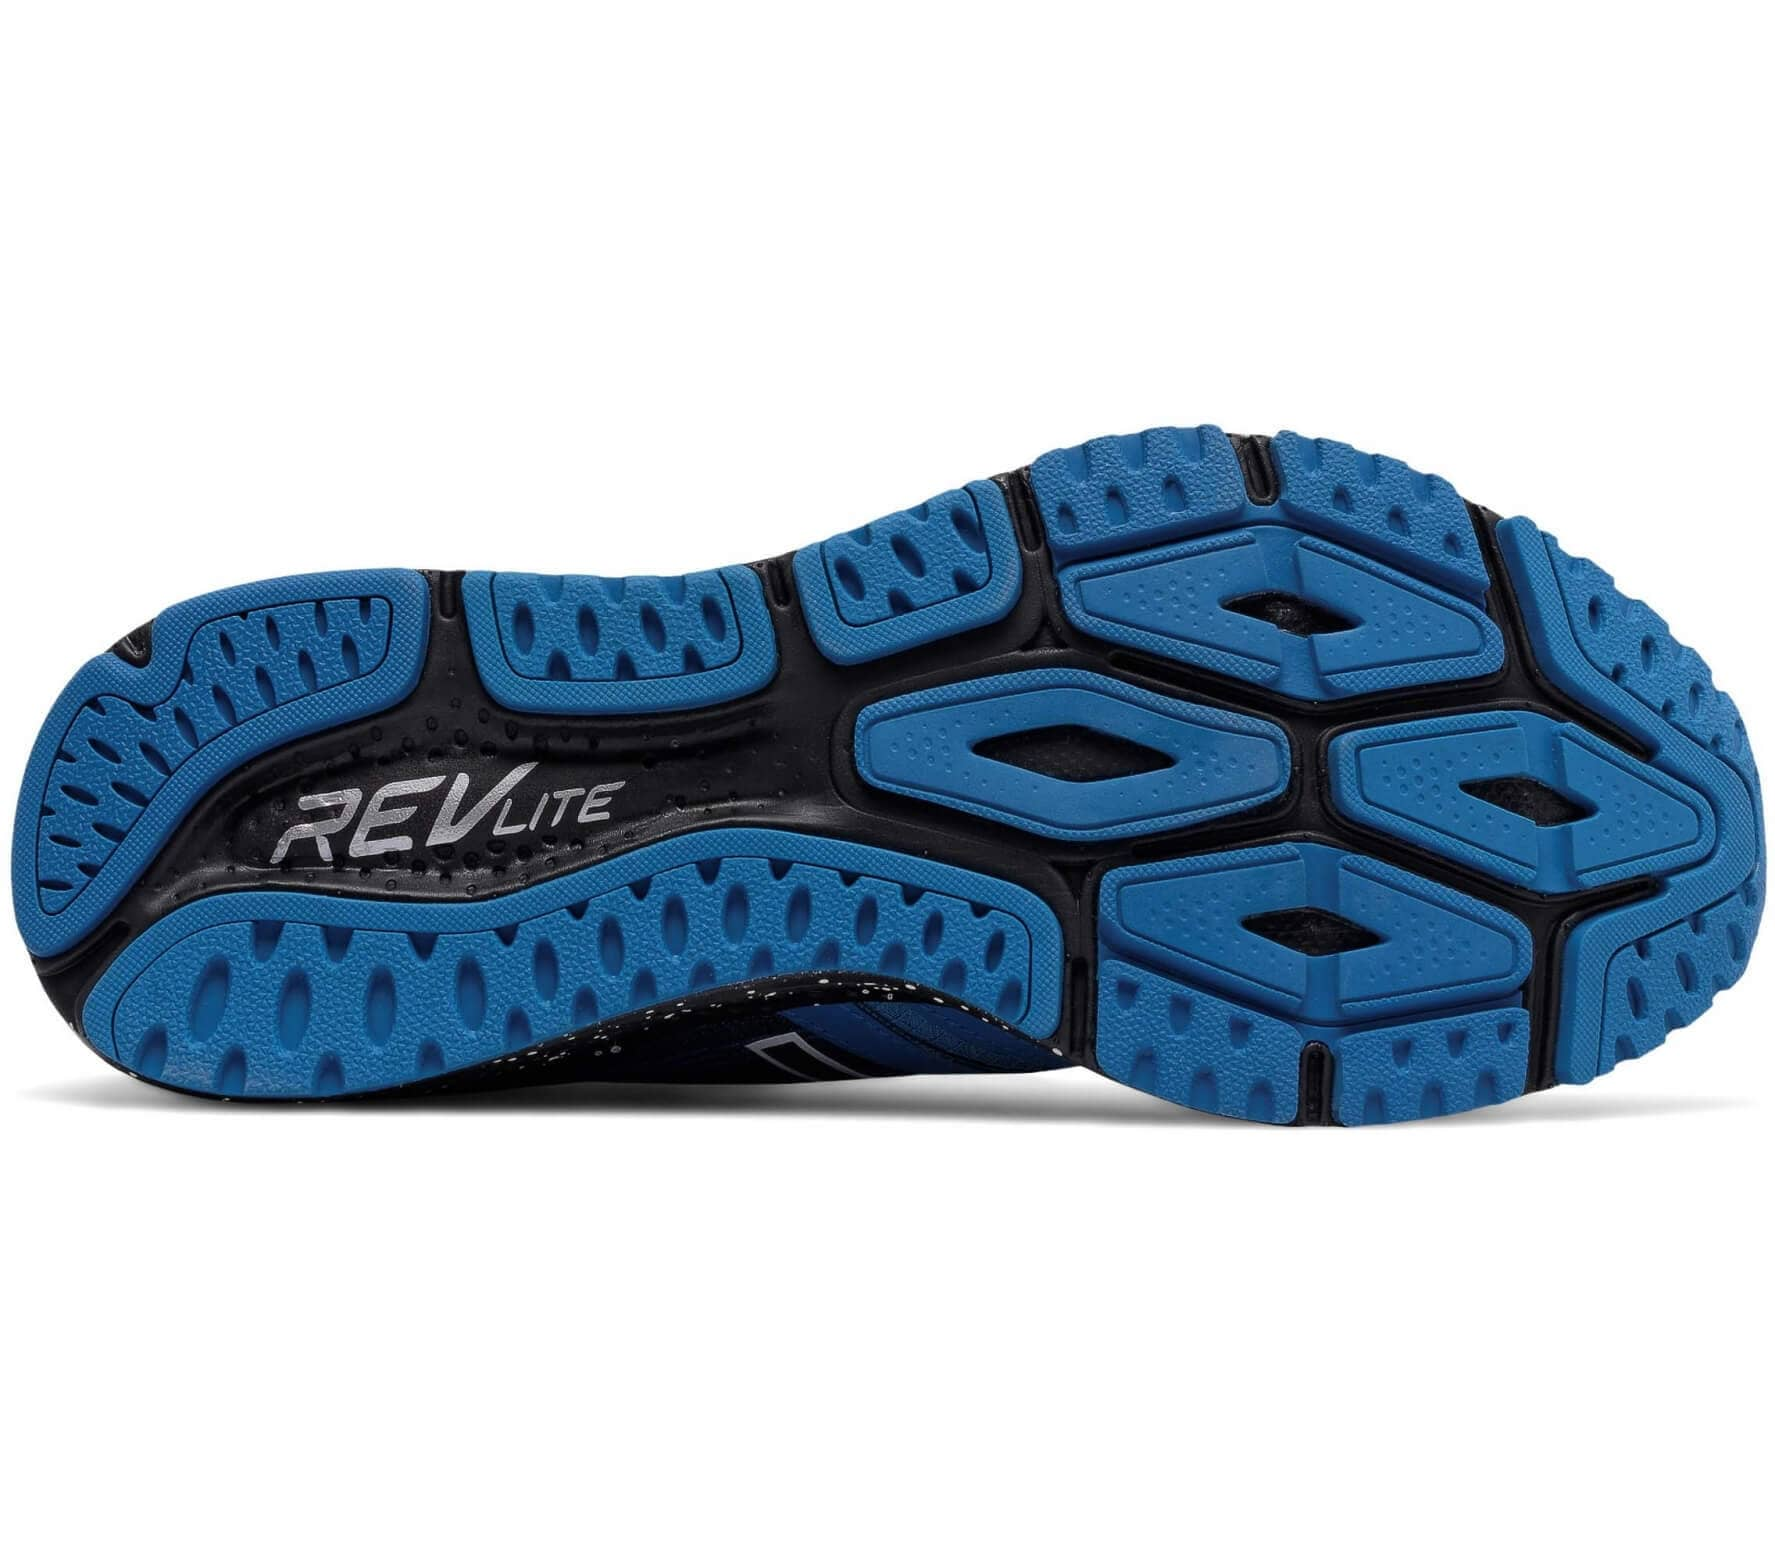 New Balance Shoes For Forefoot Running